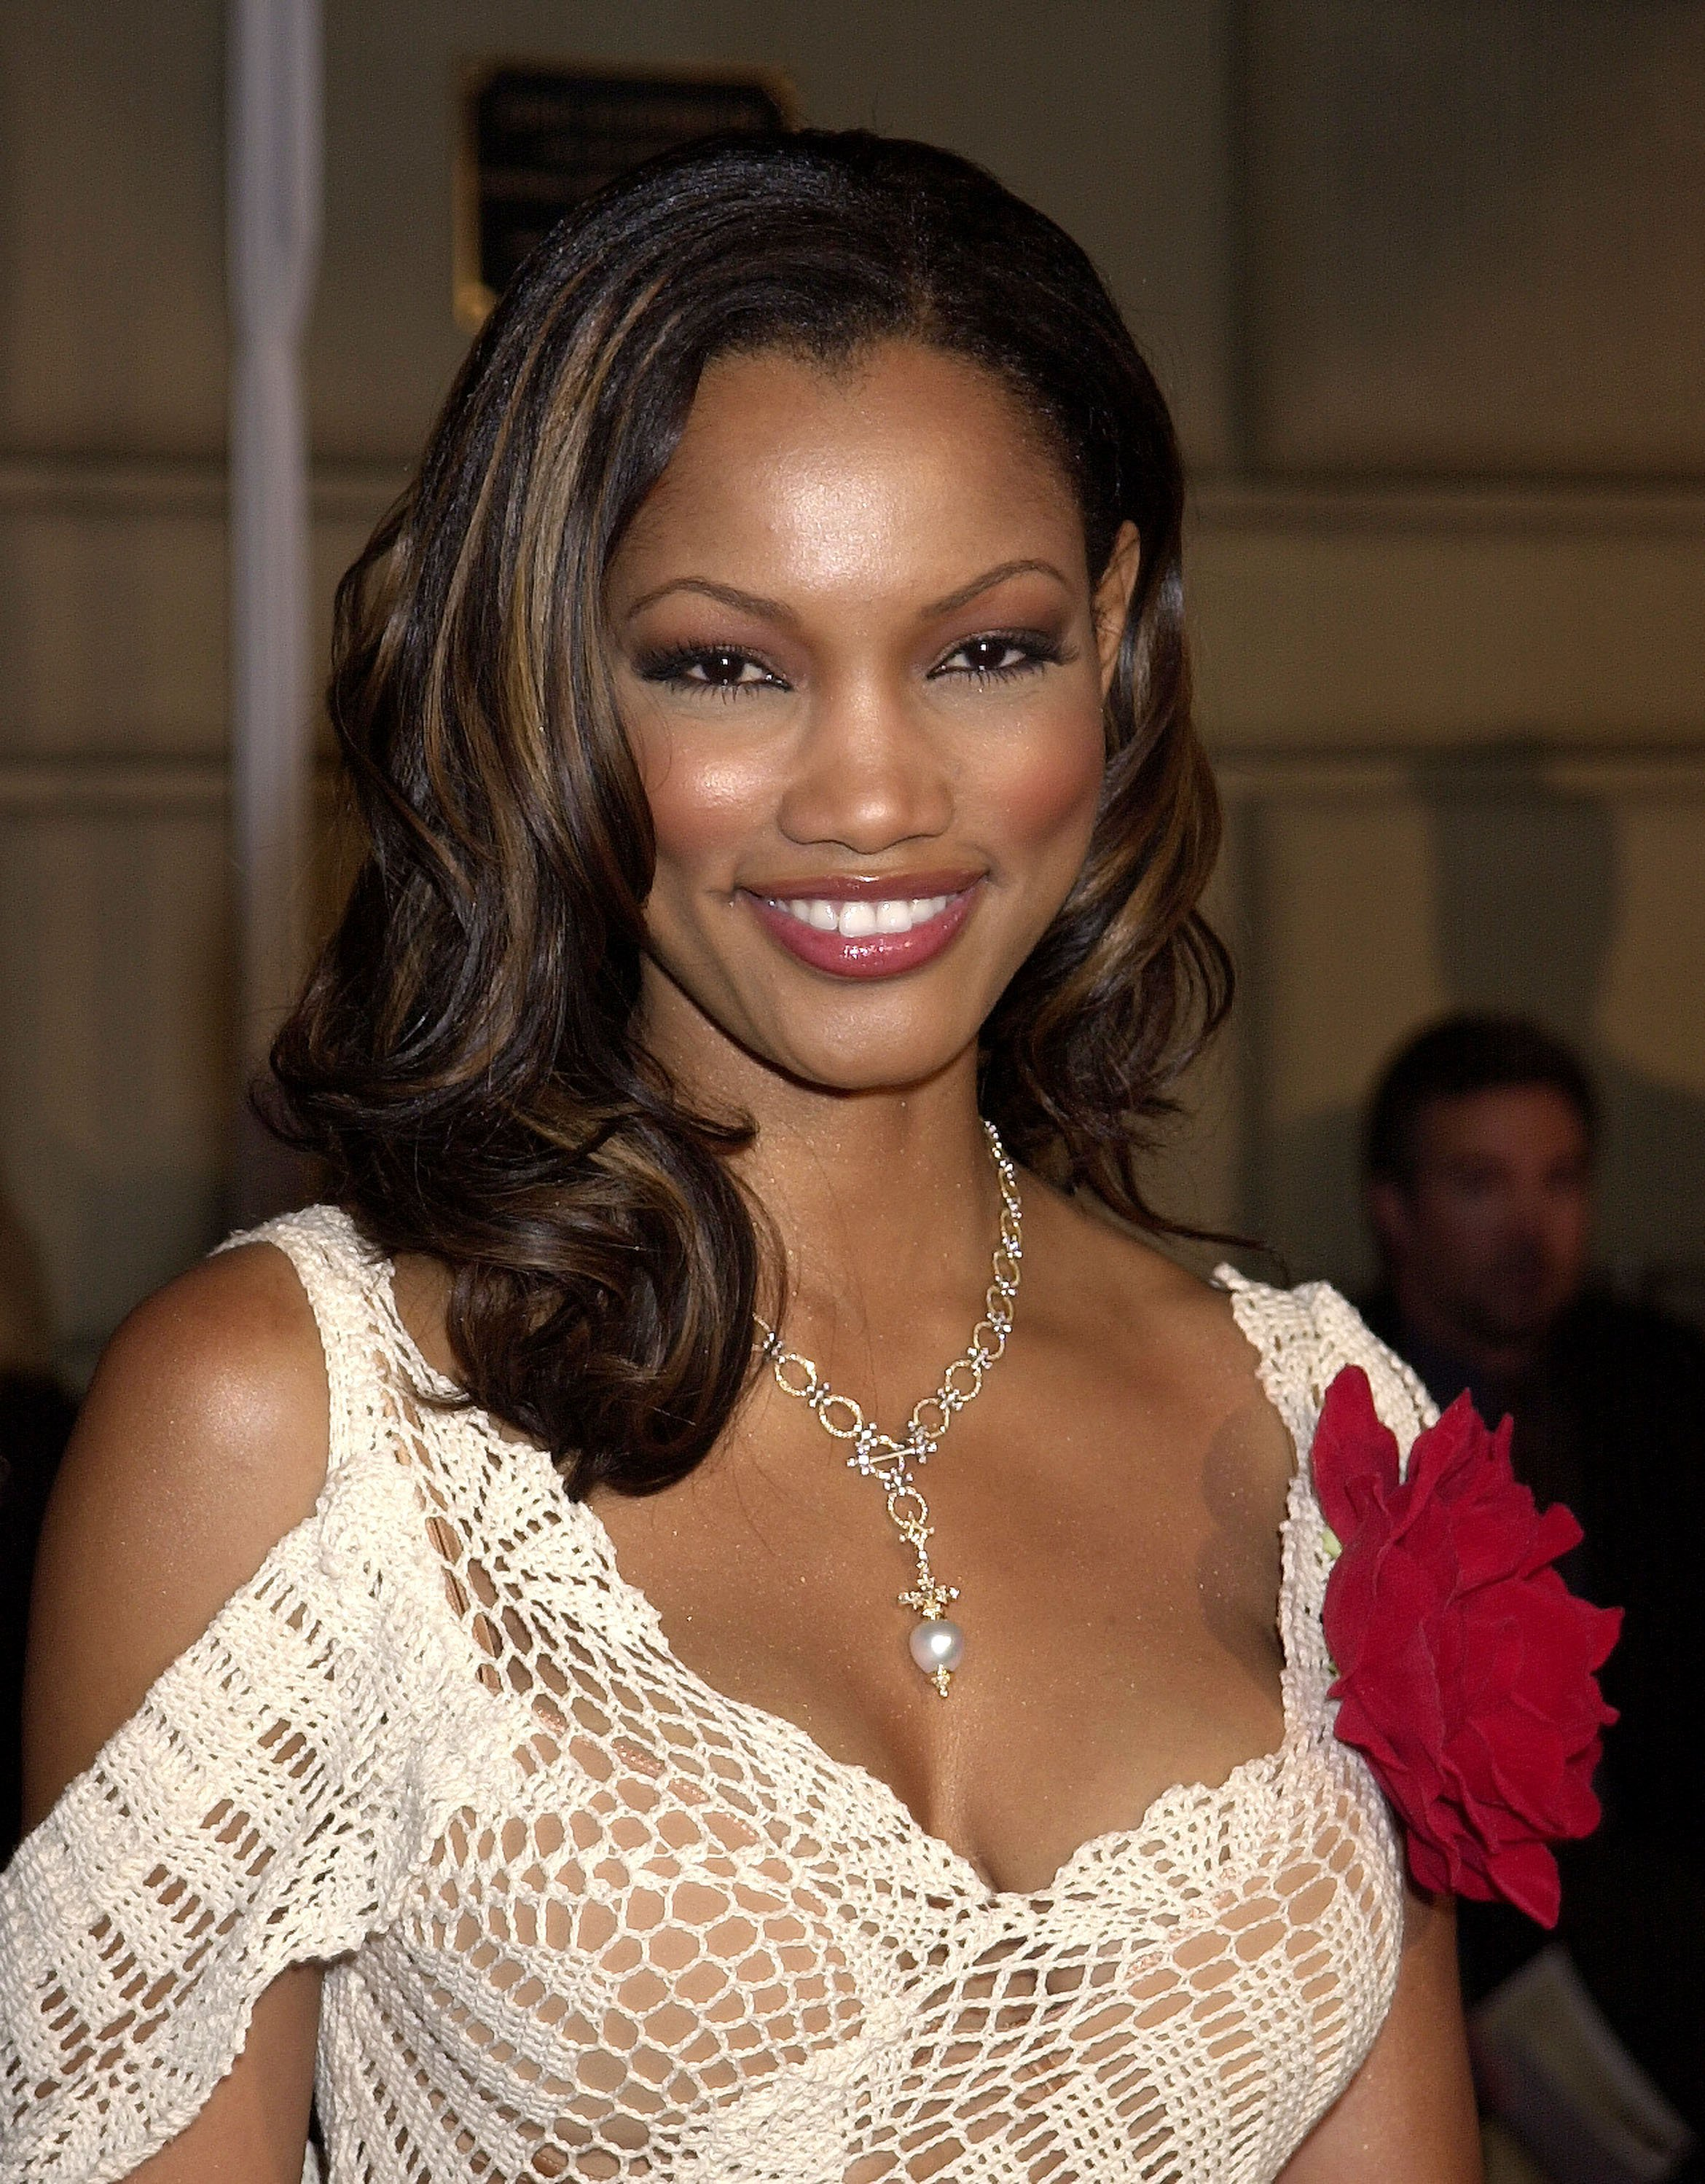 Garcelle Beauvais arrives at the 28th People's Choice Awards on January 13, 2002.   Photo: Getty Images